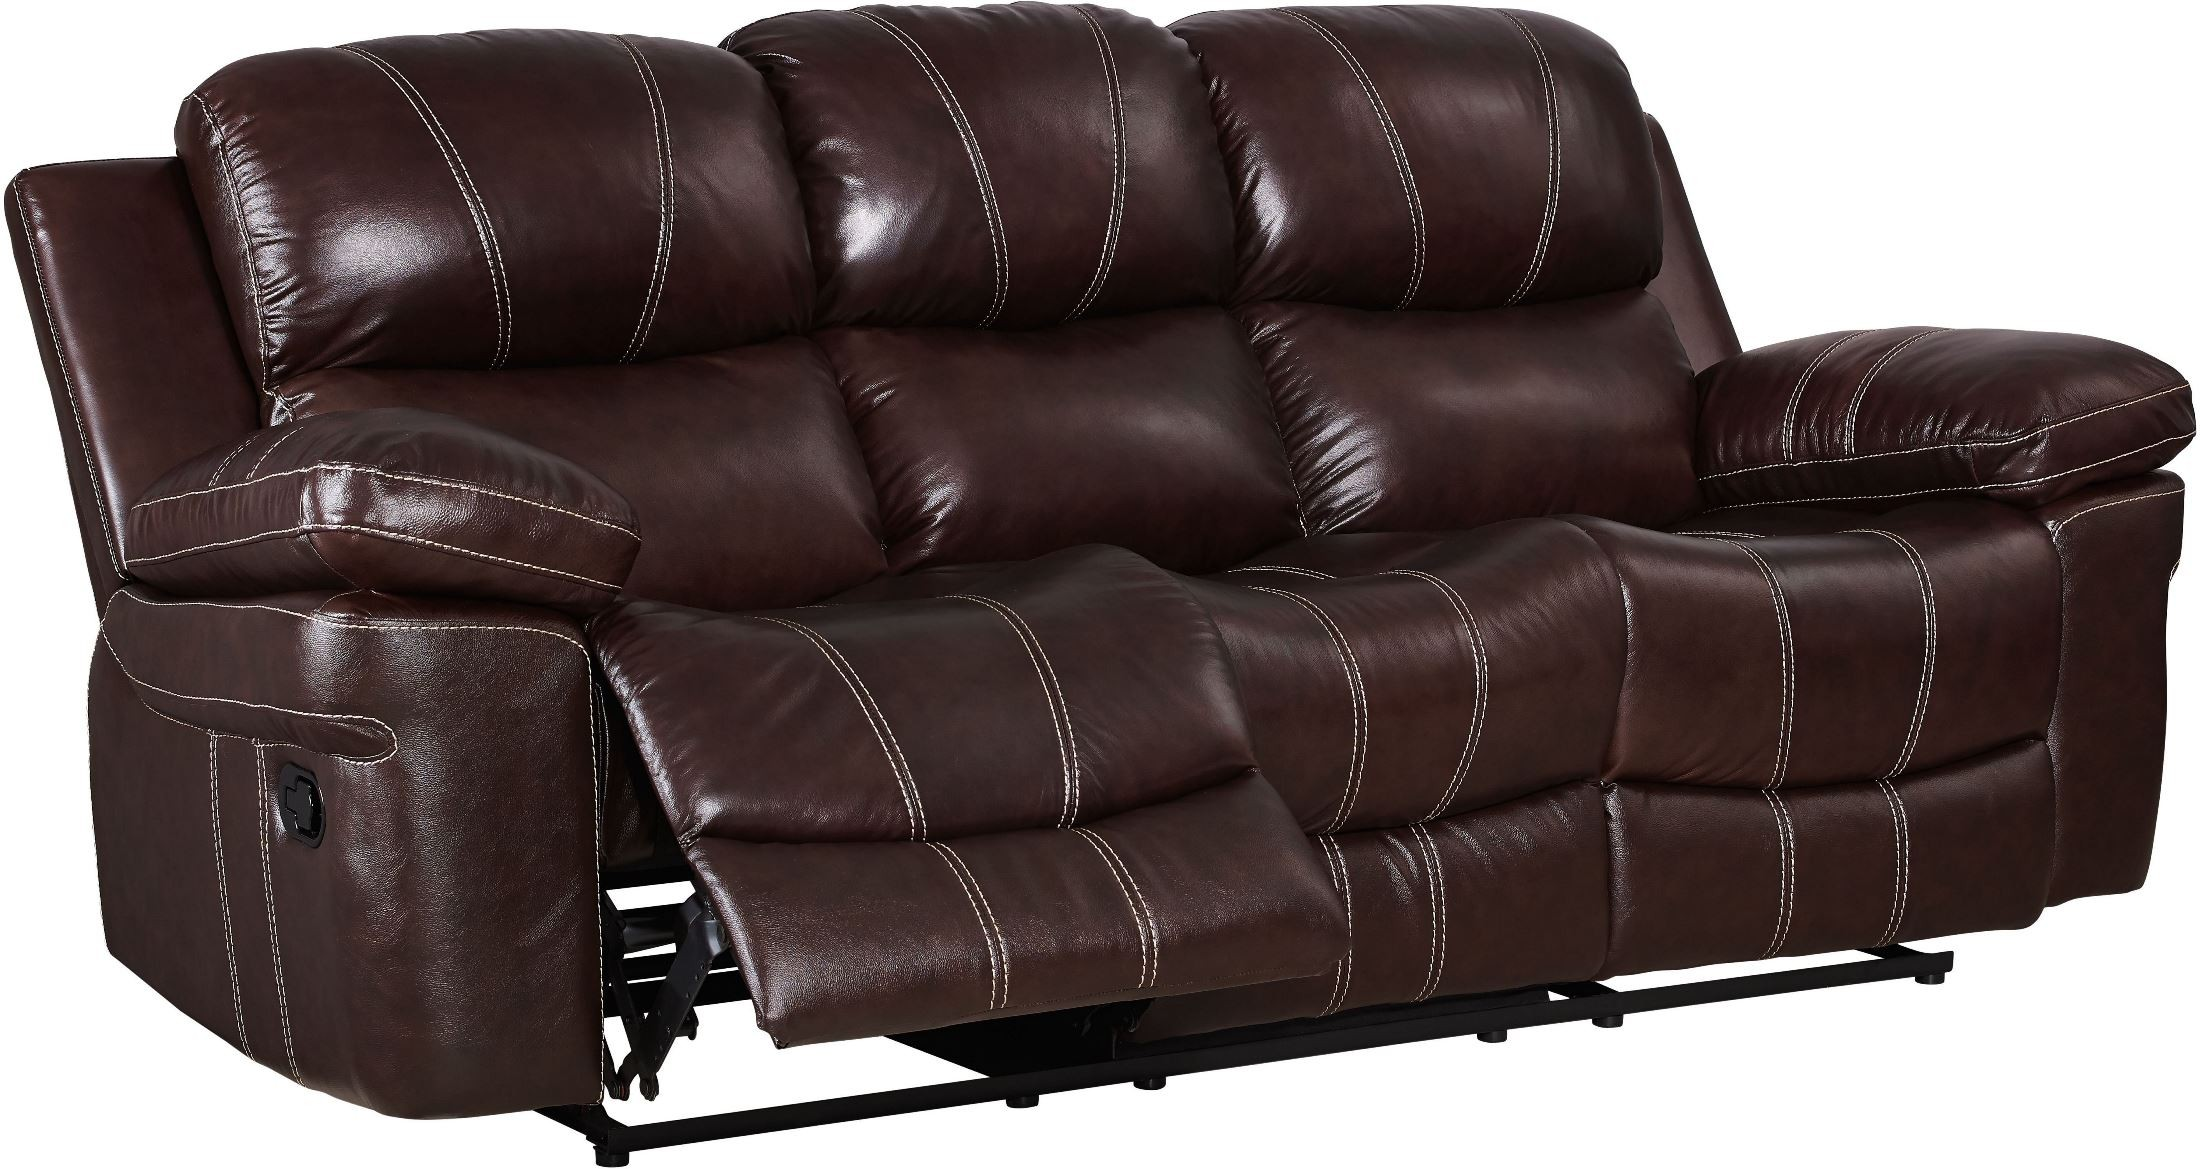 Legato Dark Brown Dual Reclining Living Room Set from New Classic